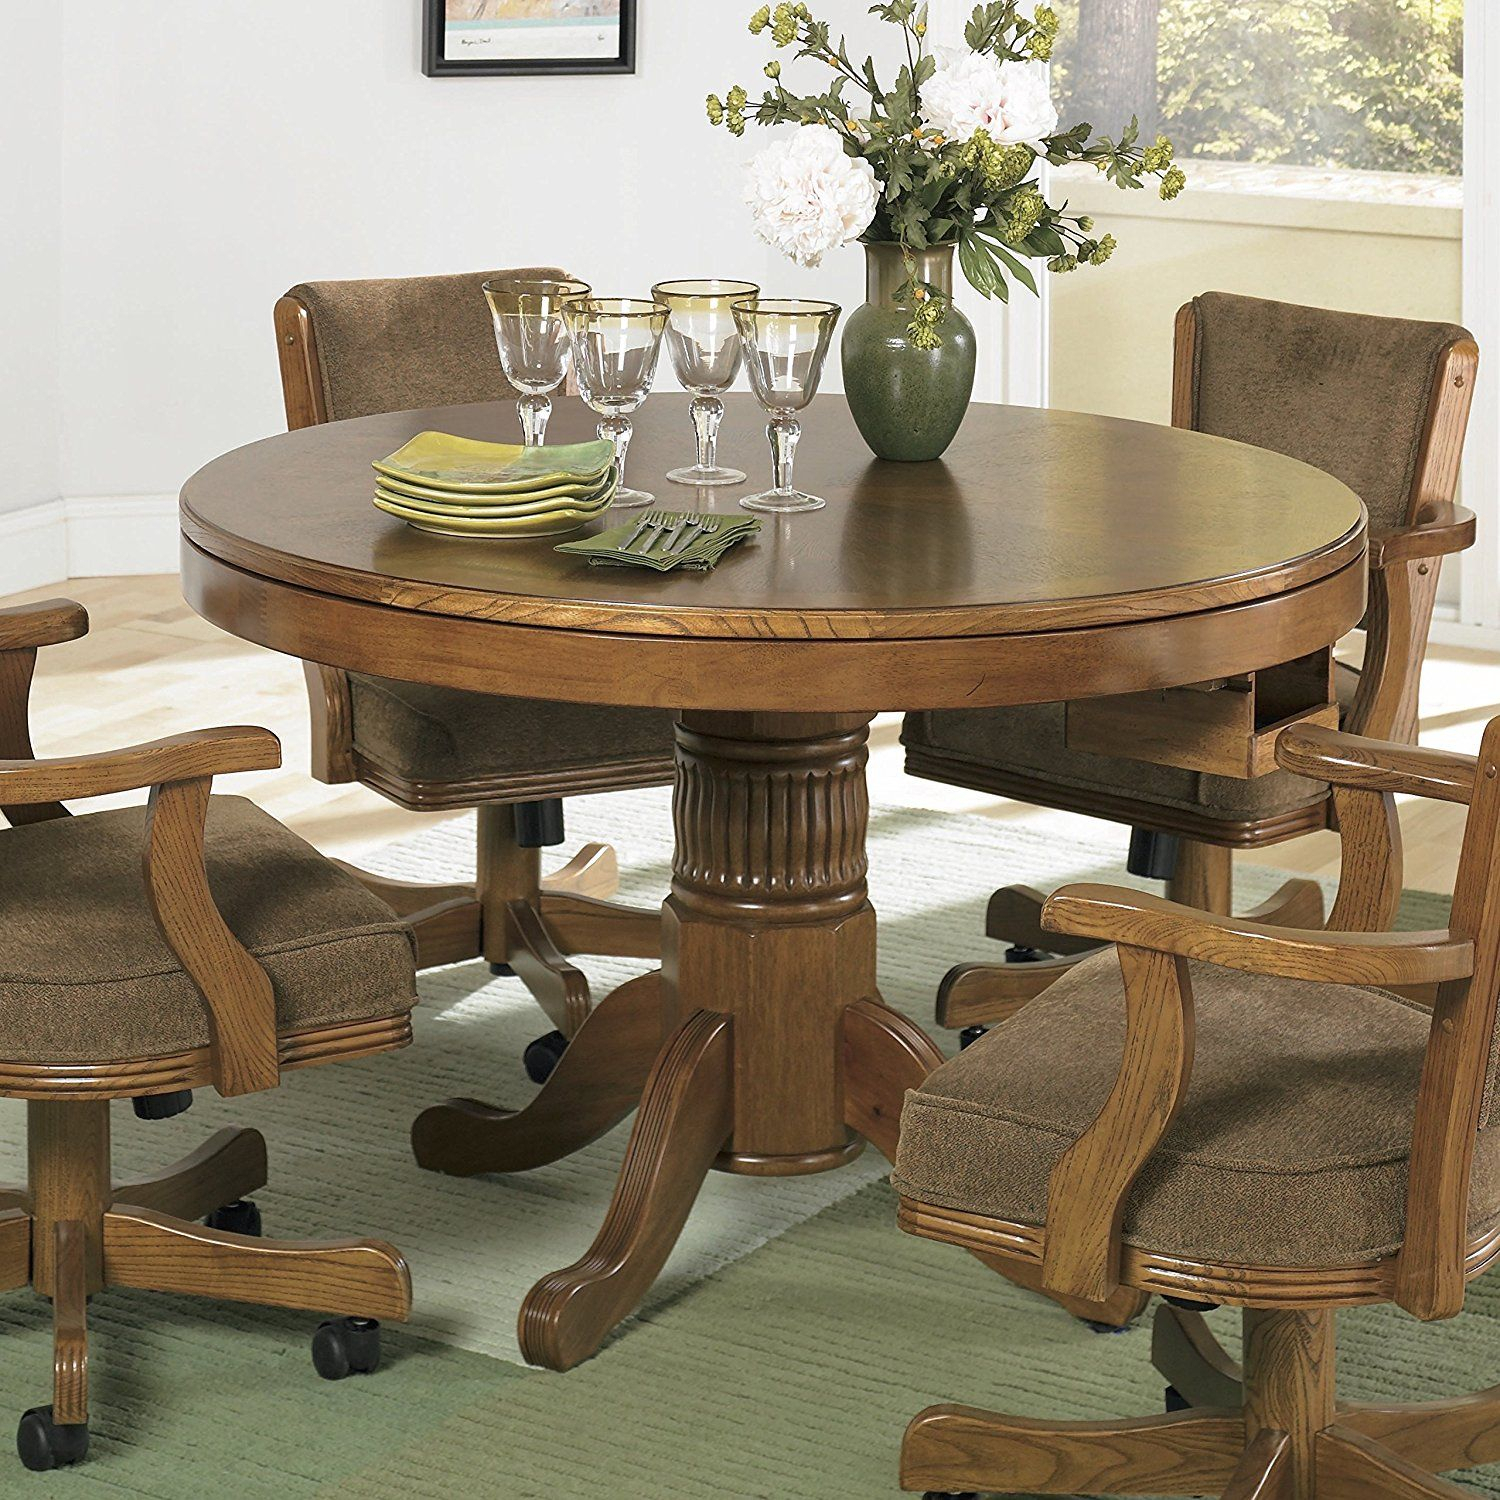 Game Table Chairs With Casters | Office Regarding Most Up To Date Tarleton 5 Piece Dining Sets (View 13 of 20)